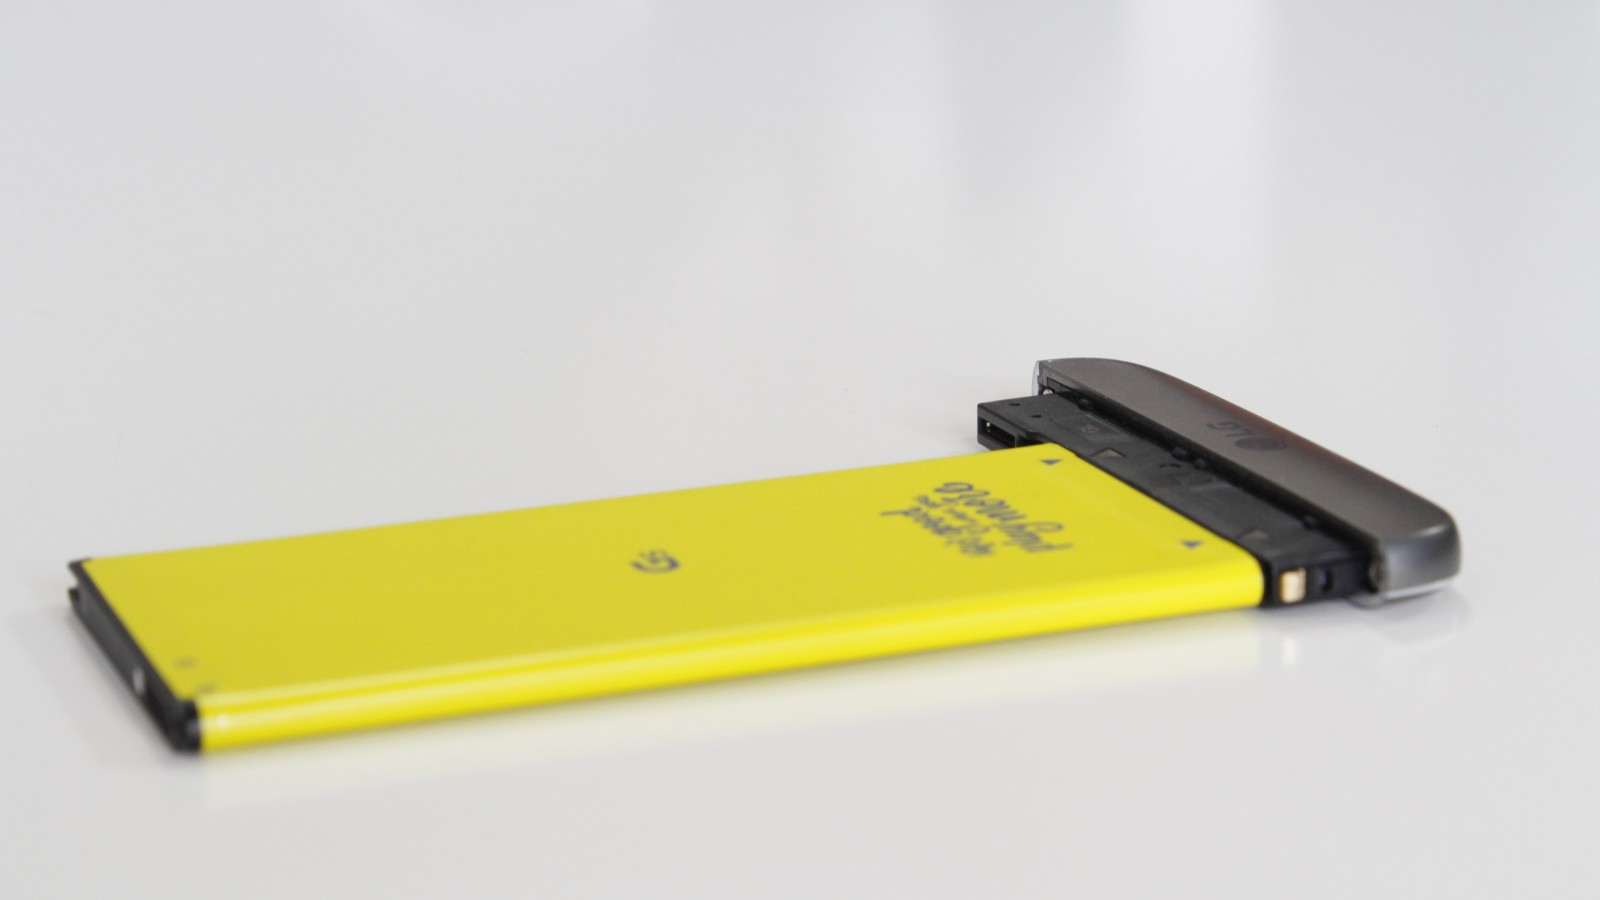 LG G5 review 8